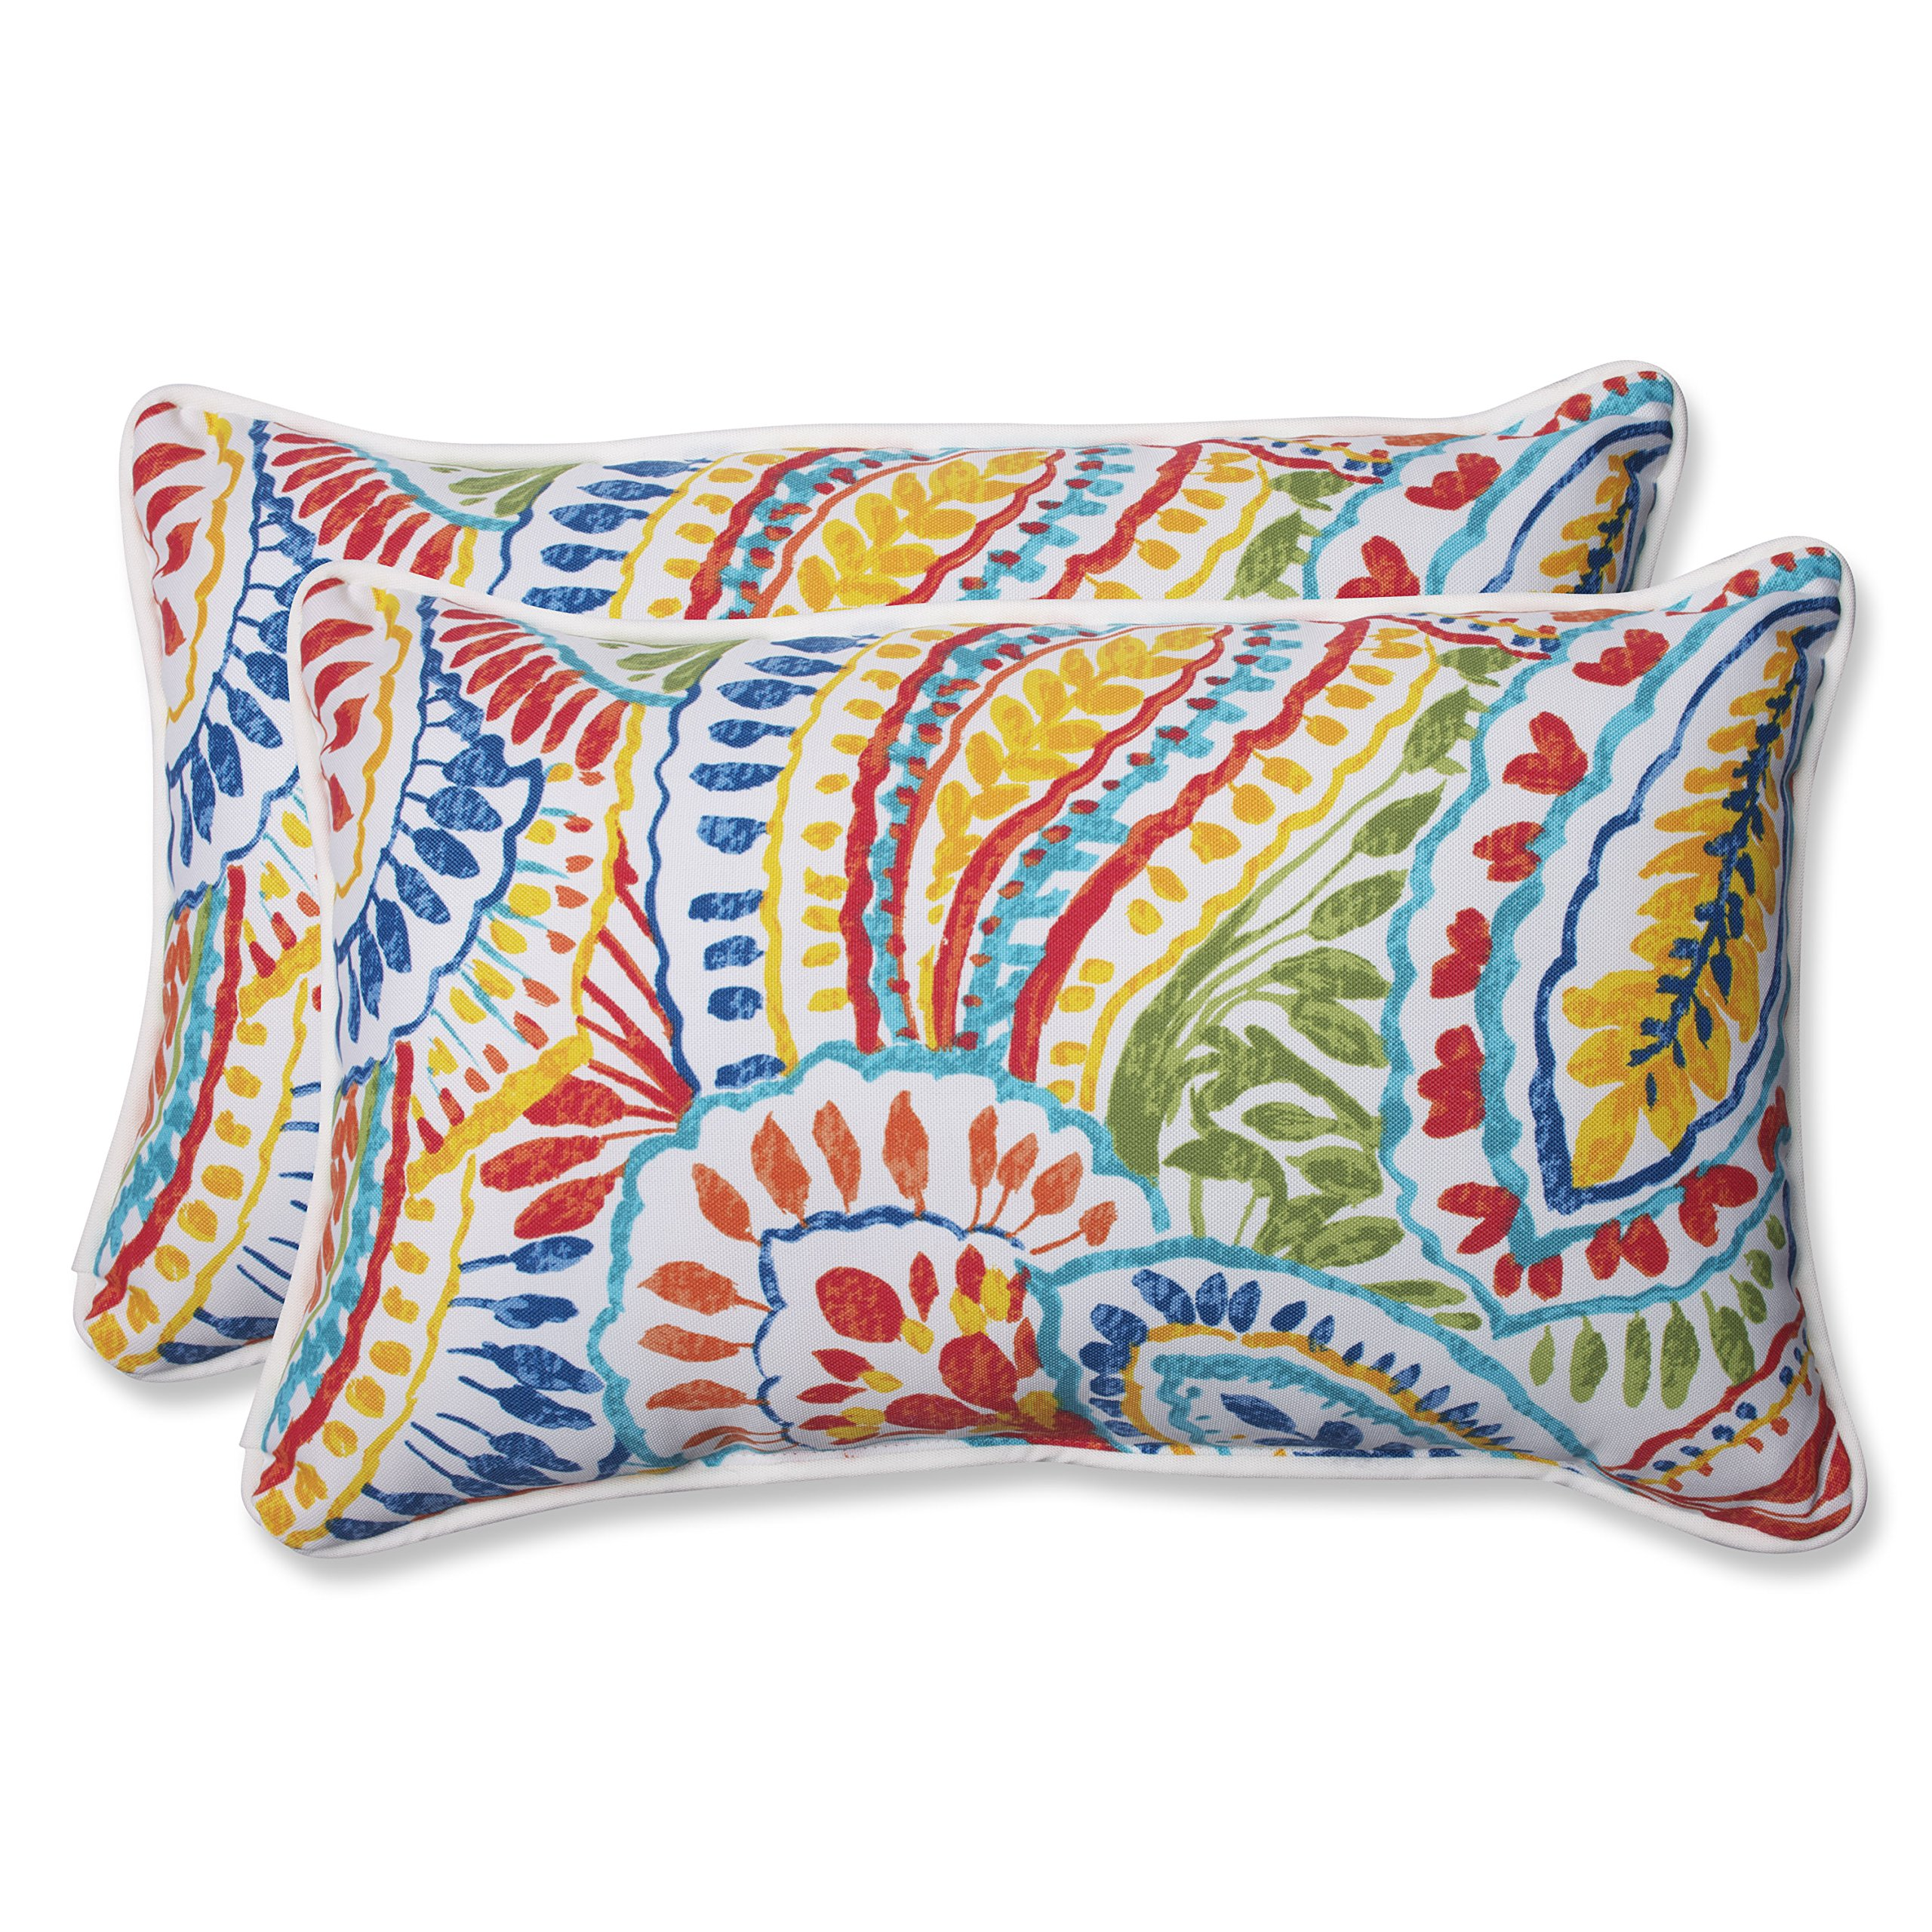 Pillow Perfect Outdoor Ummi Rectangular Throw Pillow, Multicolored, Set of 2 by Pillow Perfect